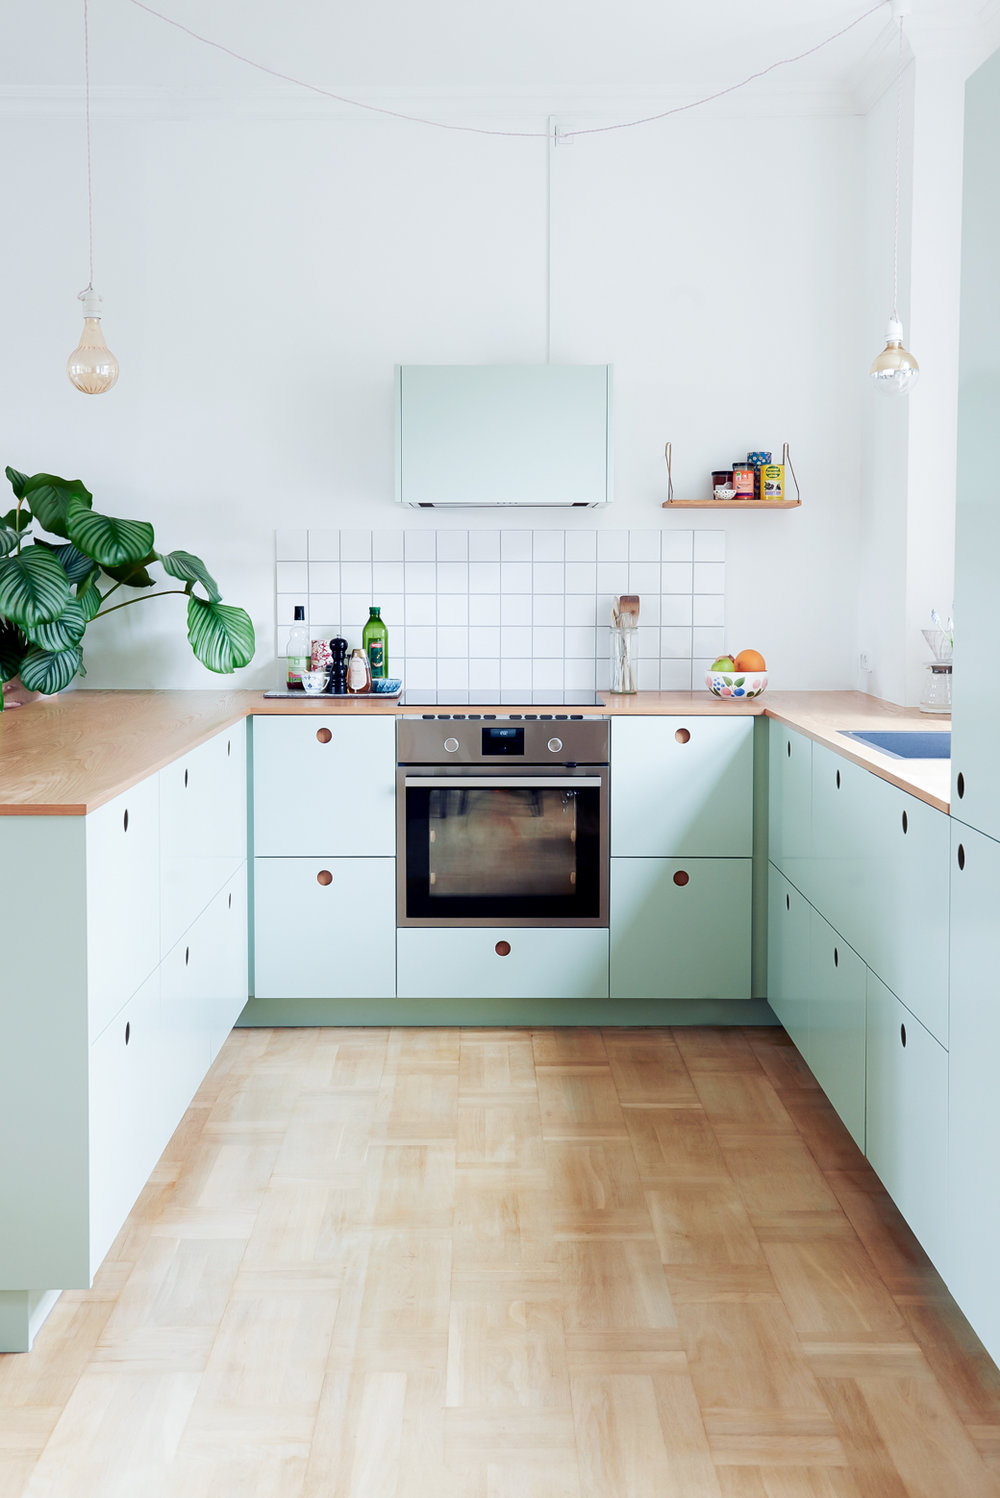 The Pros And Cons Of Having No Upper Cabinets In The Kitchen